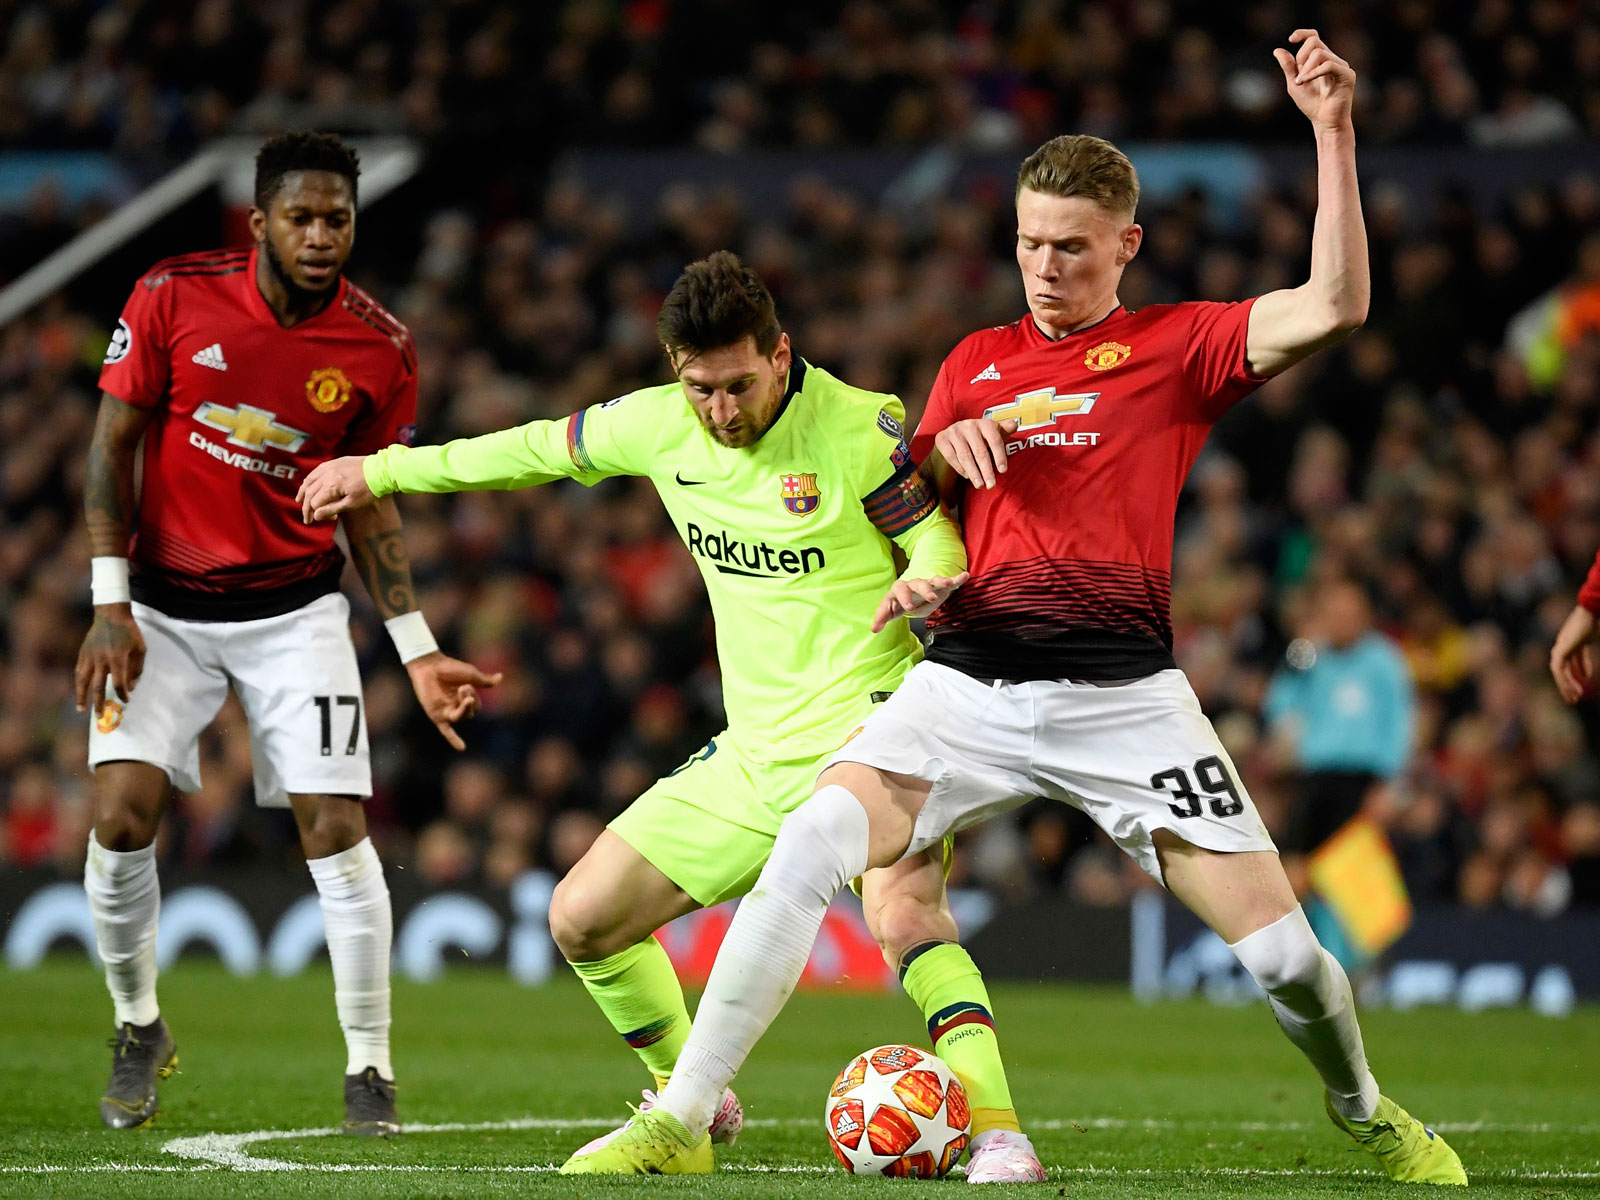 Scott McTominay defends Lionel Messi in the Champions League